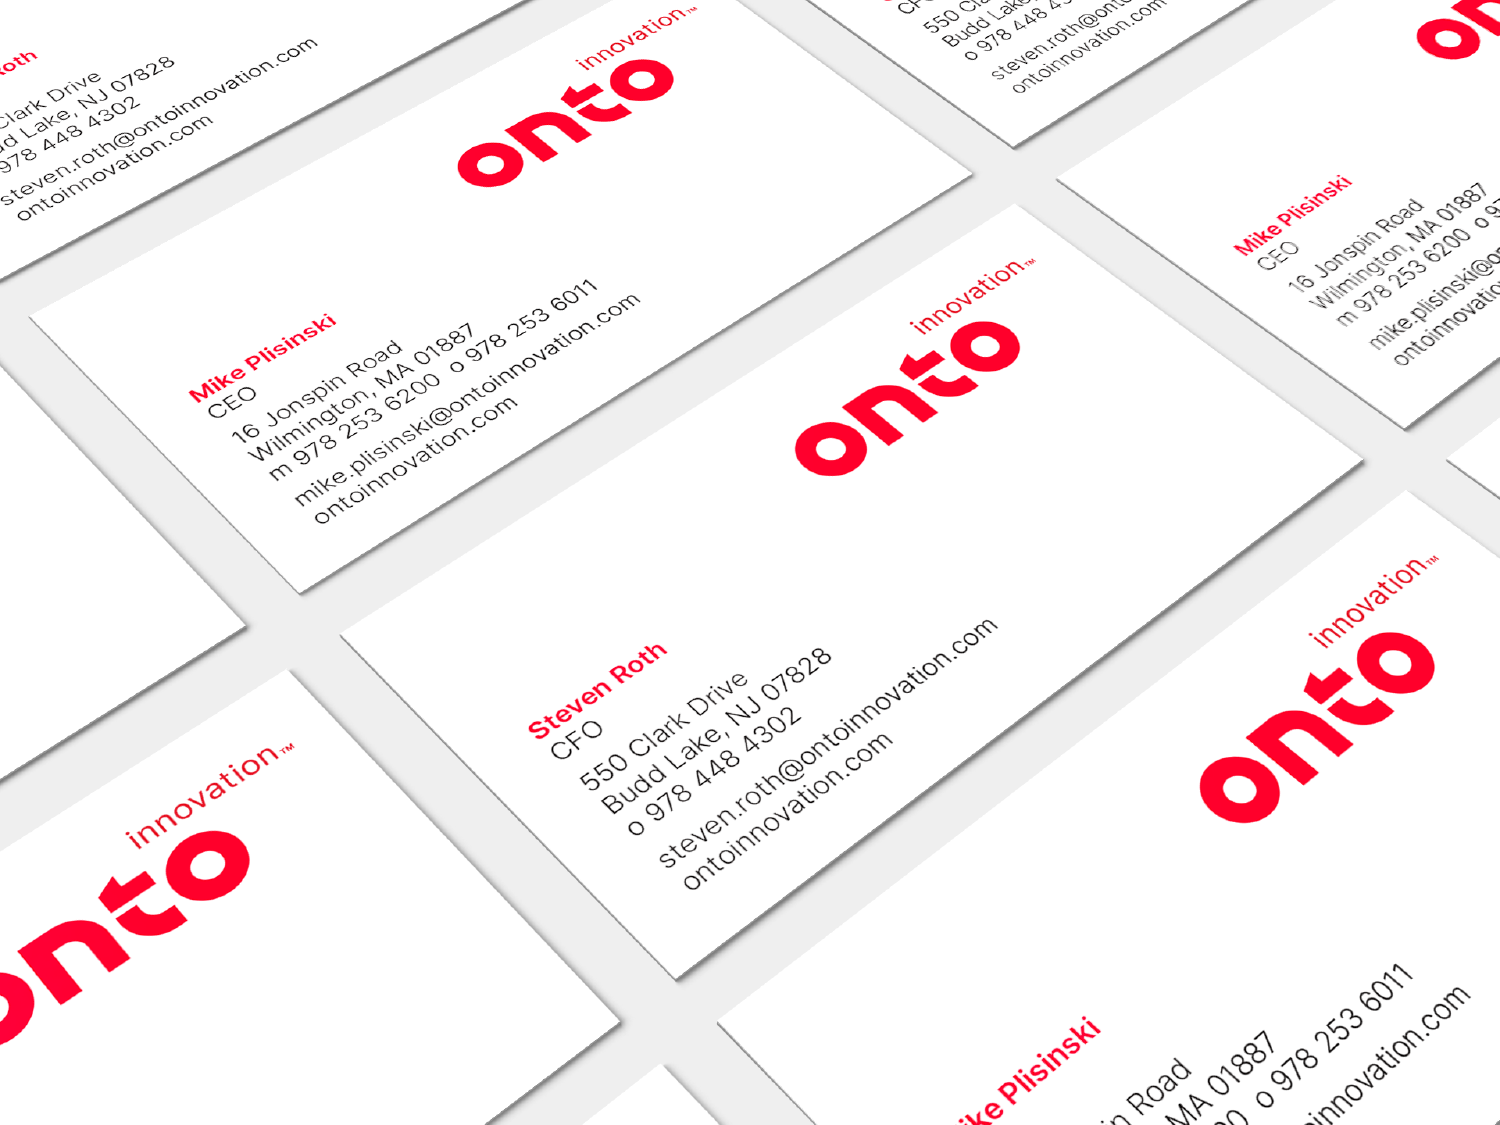 Onto Innovation Business cards, information only printed on the front